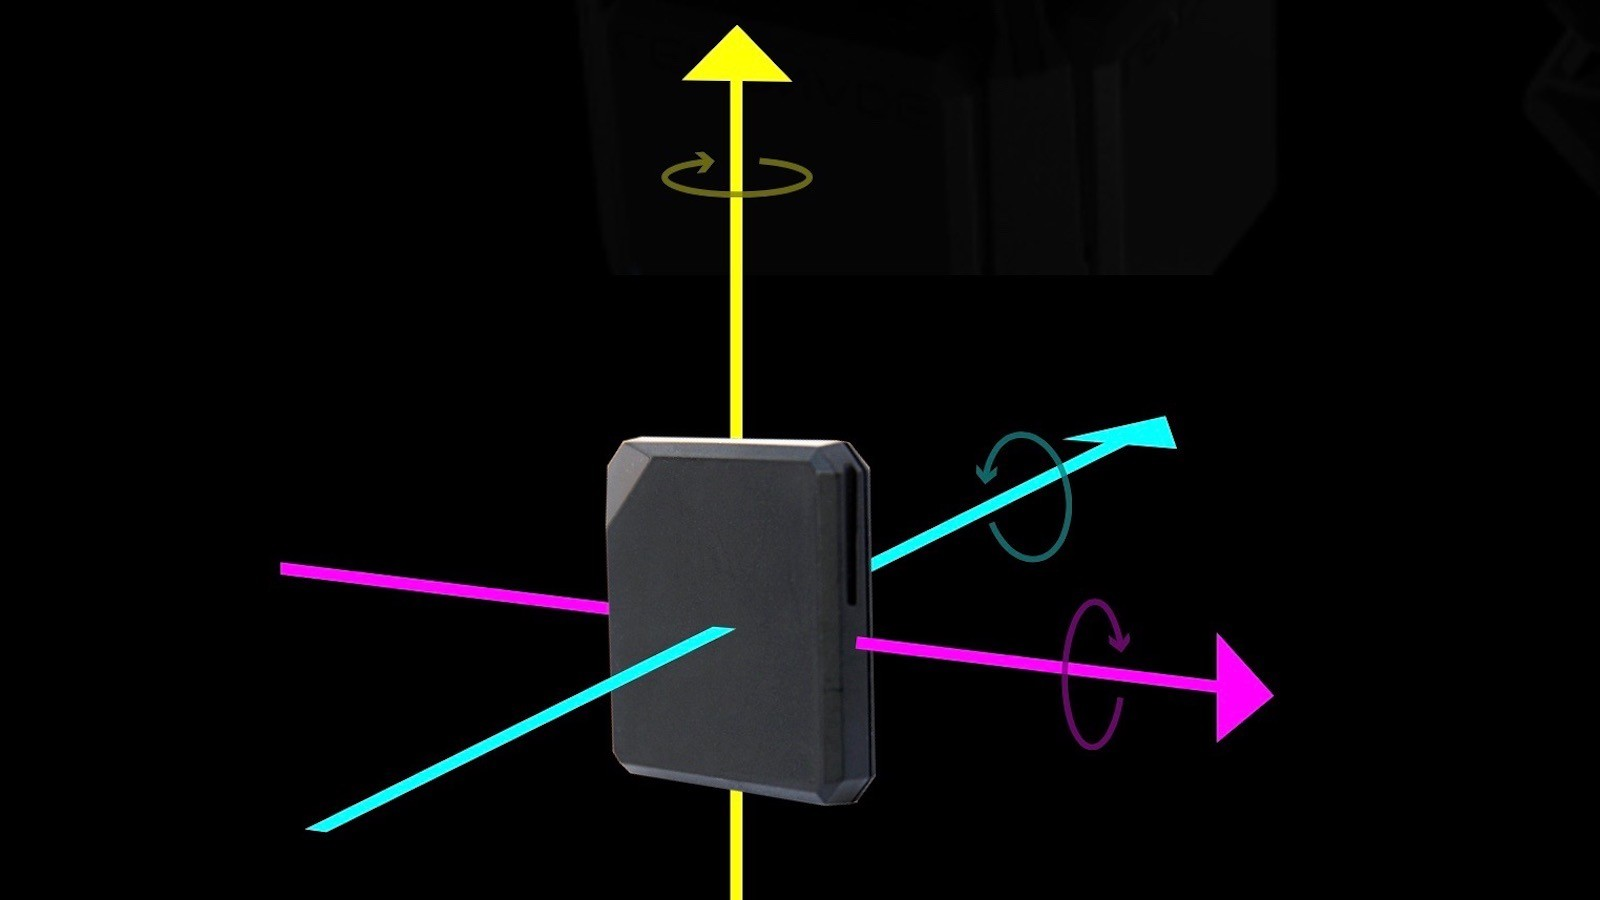 Leomo claims each sensor is capable of detecting motion through acceleration in all three axes